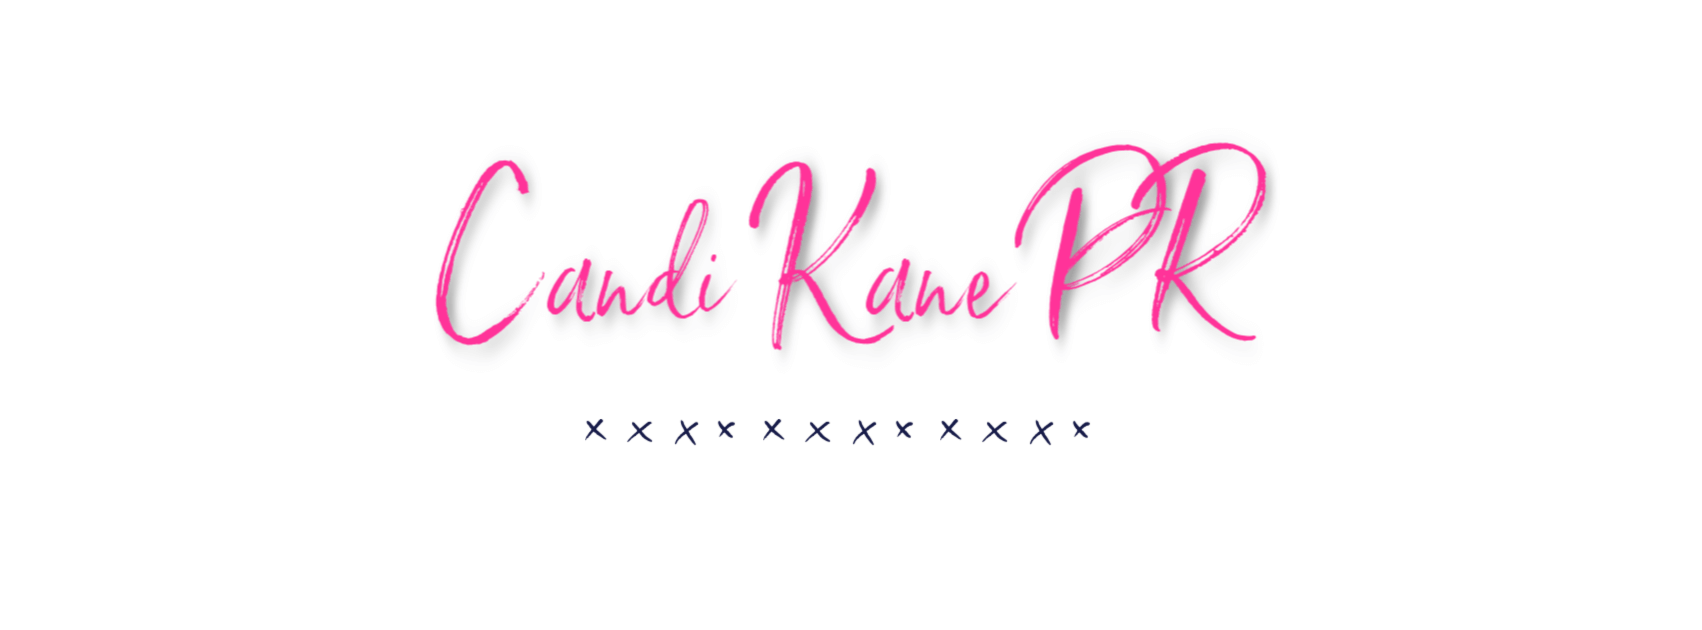 Candi Kane PR, Banner, Pink Letters, White background